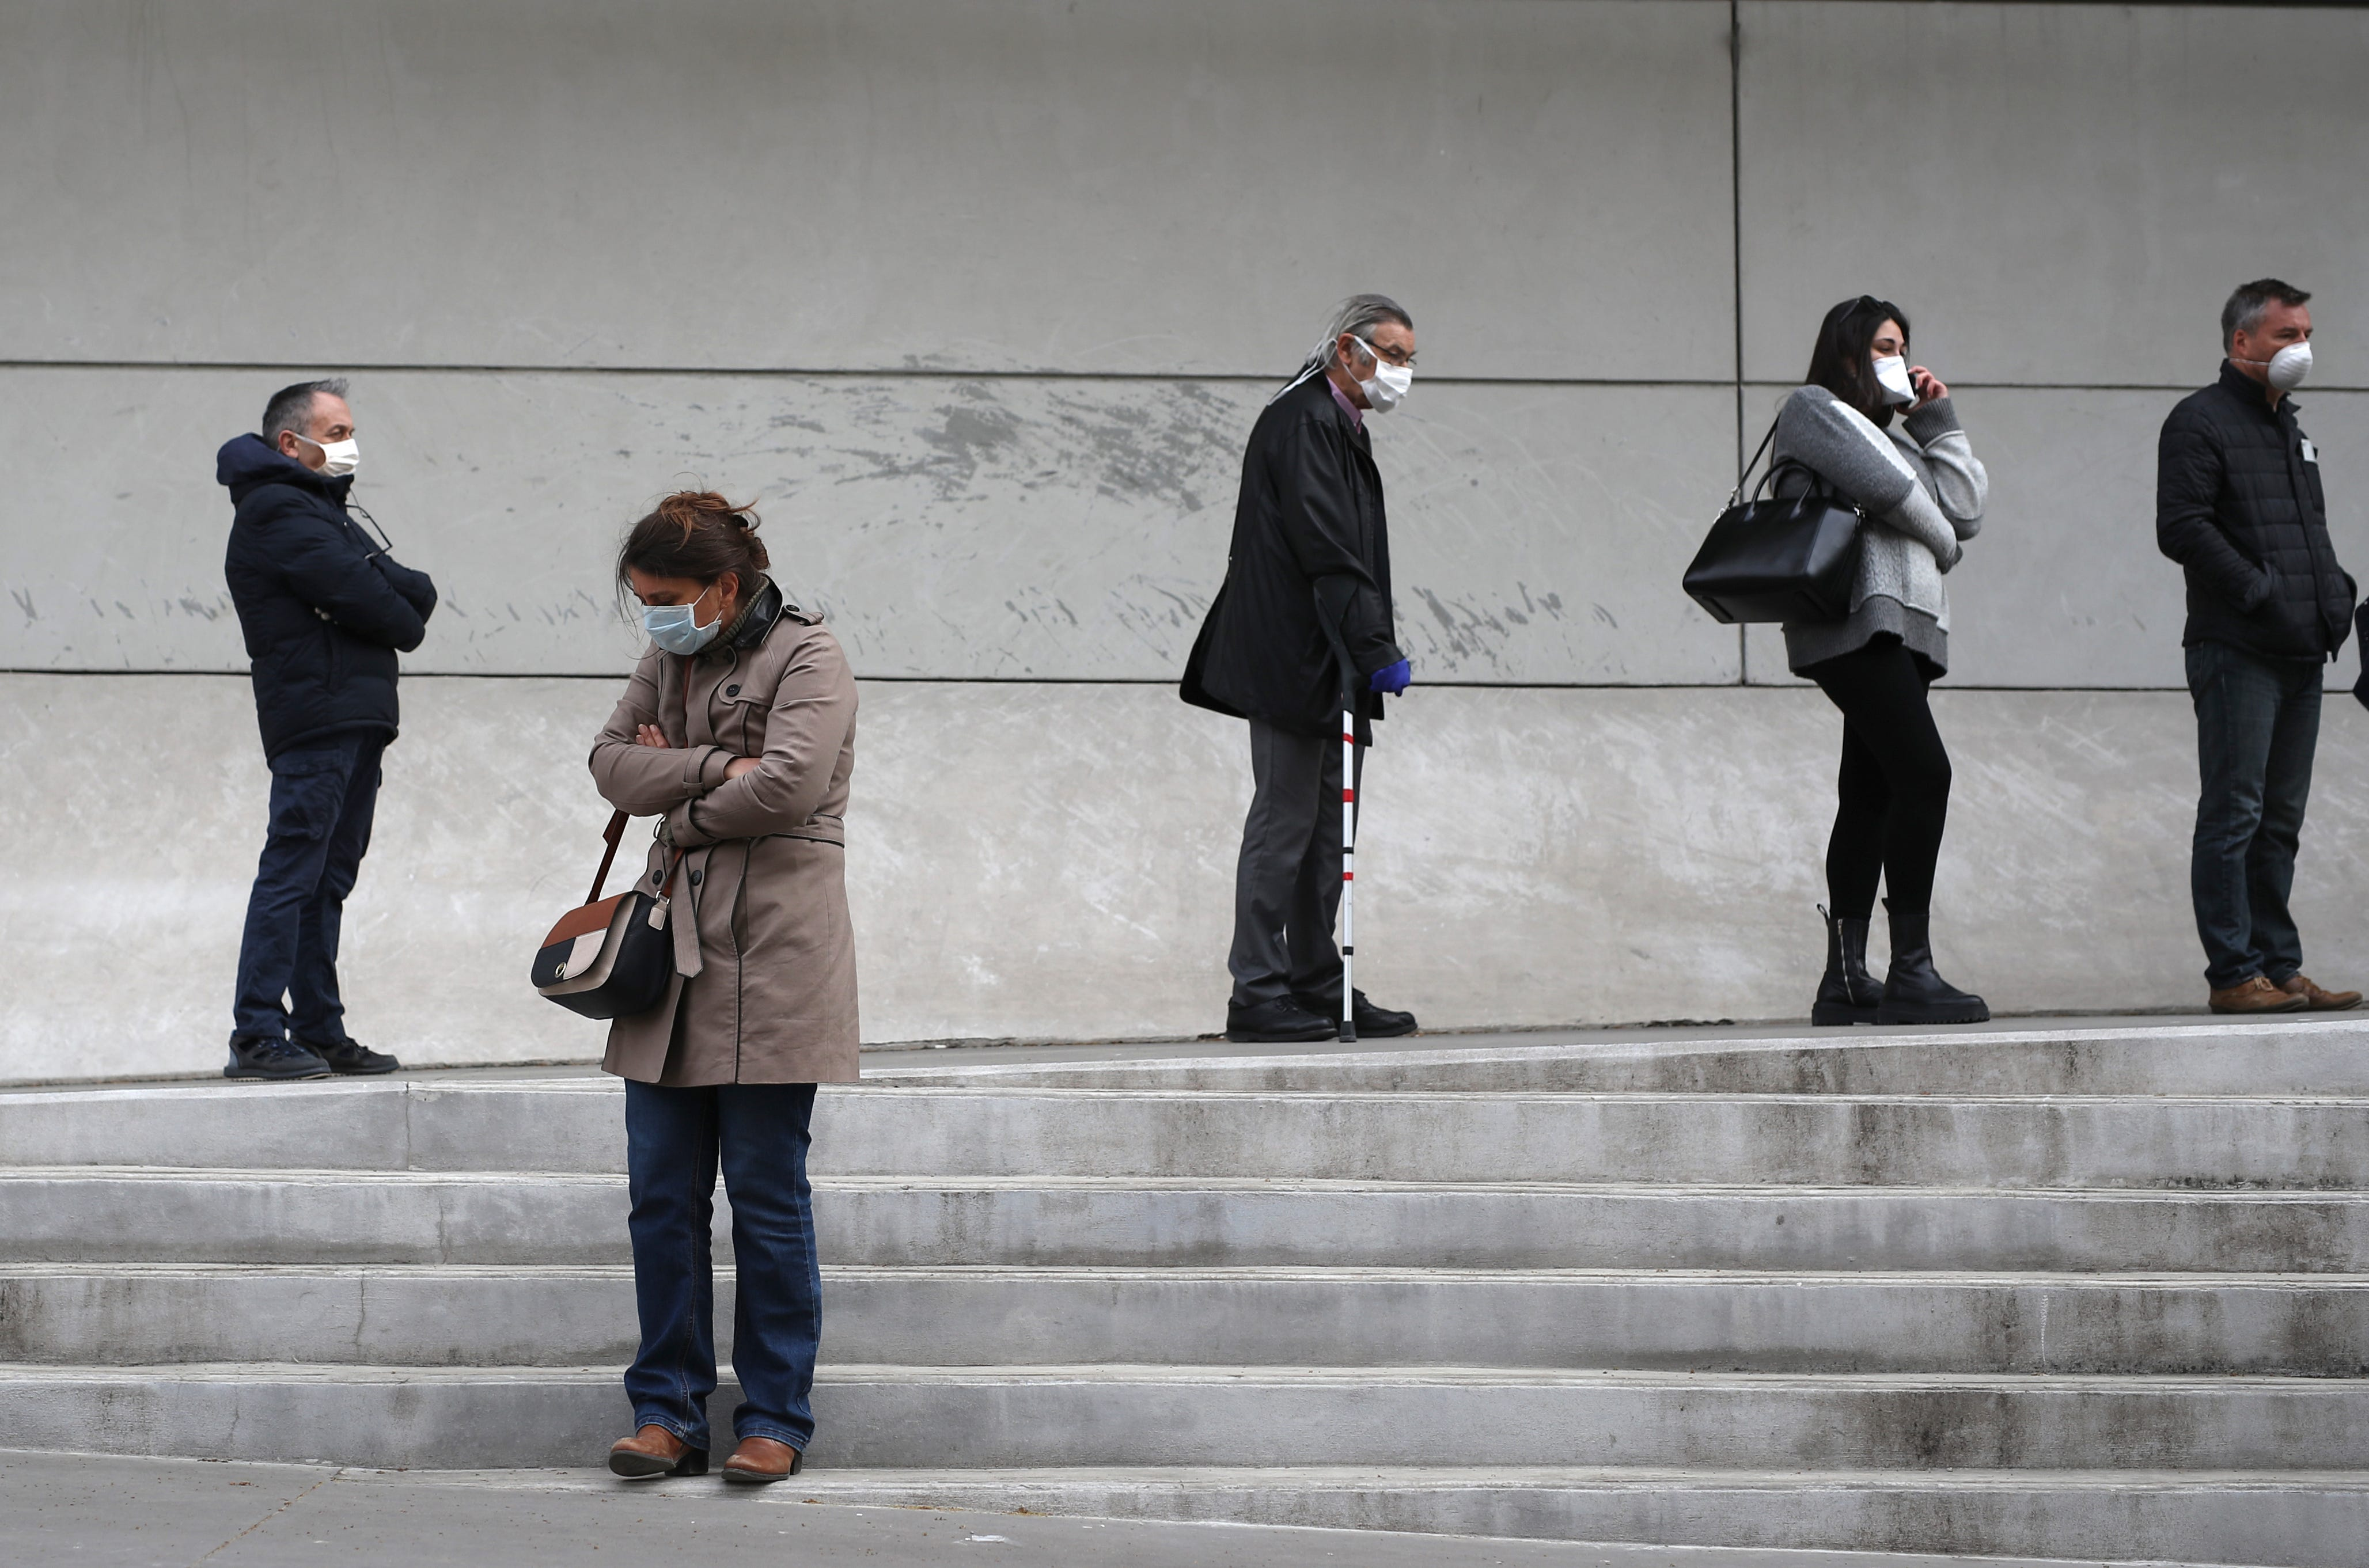 Slide 15 of 113: People wait in line to get a coronavirus test outside the La Timone hospital in Marseille, France, March 23, 2020.